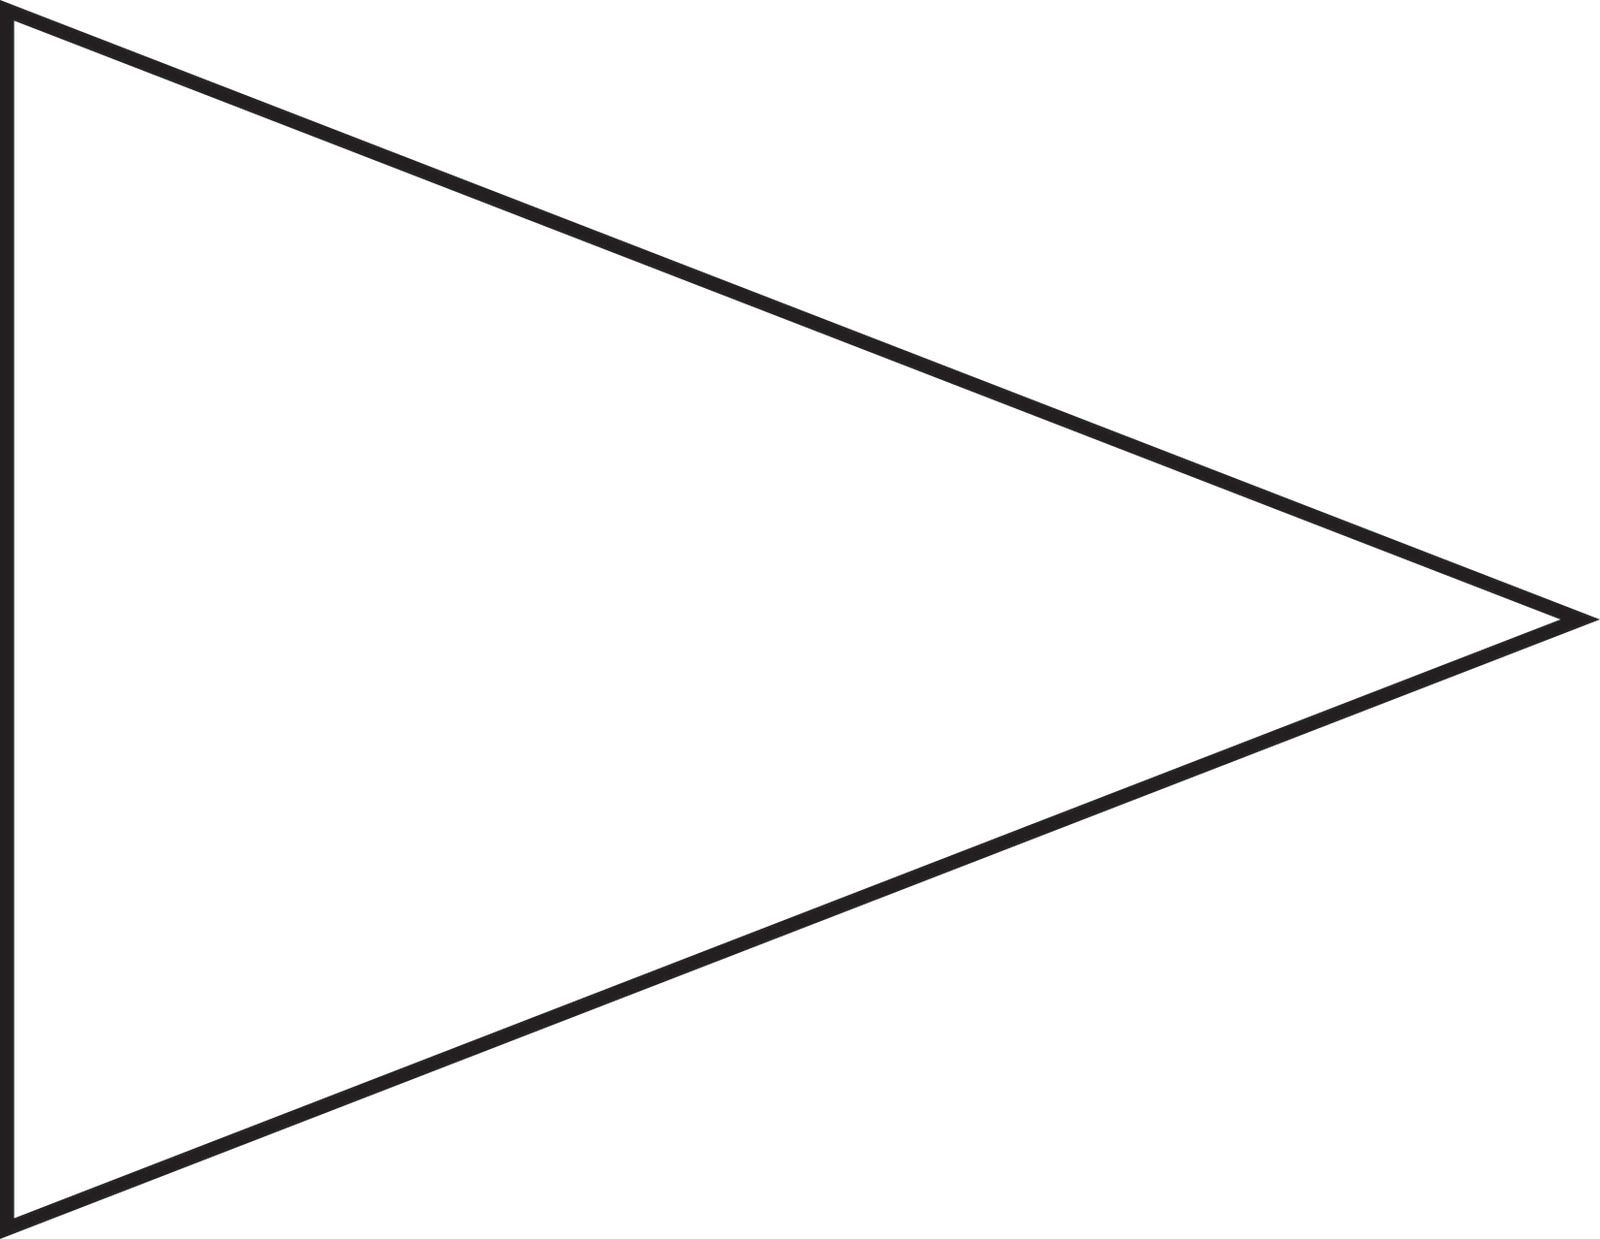 Pennant clipart. Pin triangle flag outline